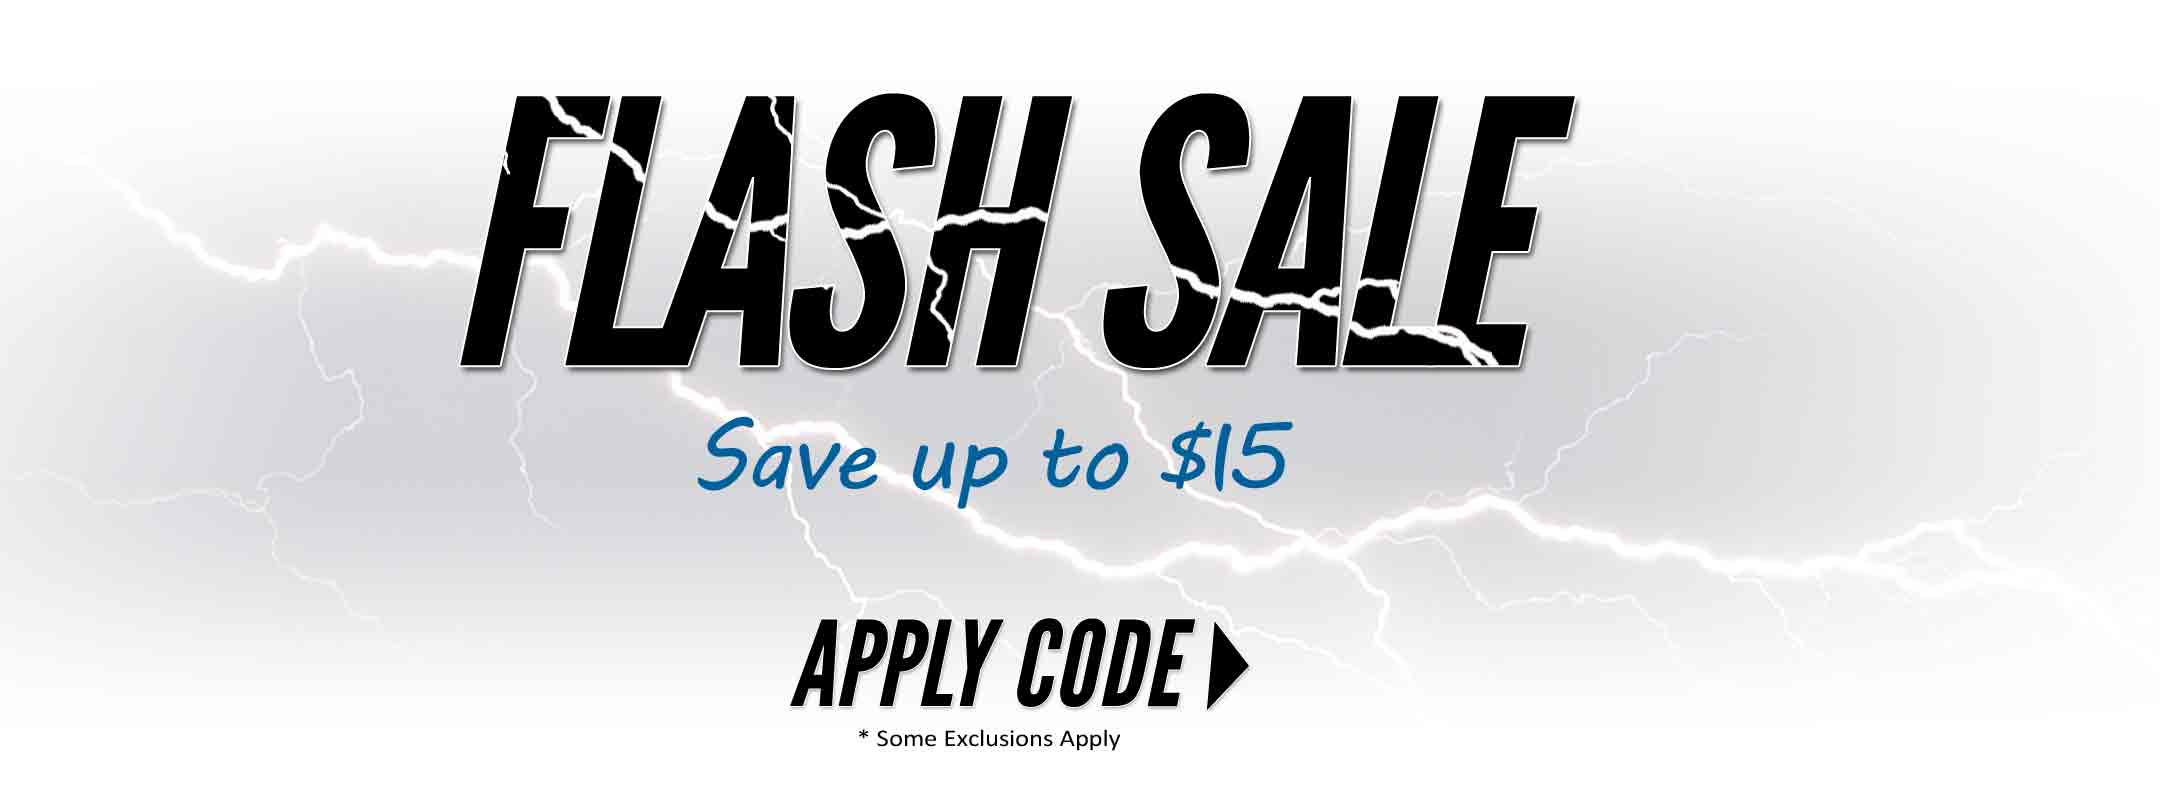 Flash Sale - Save up to $15